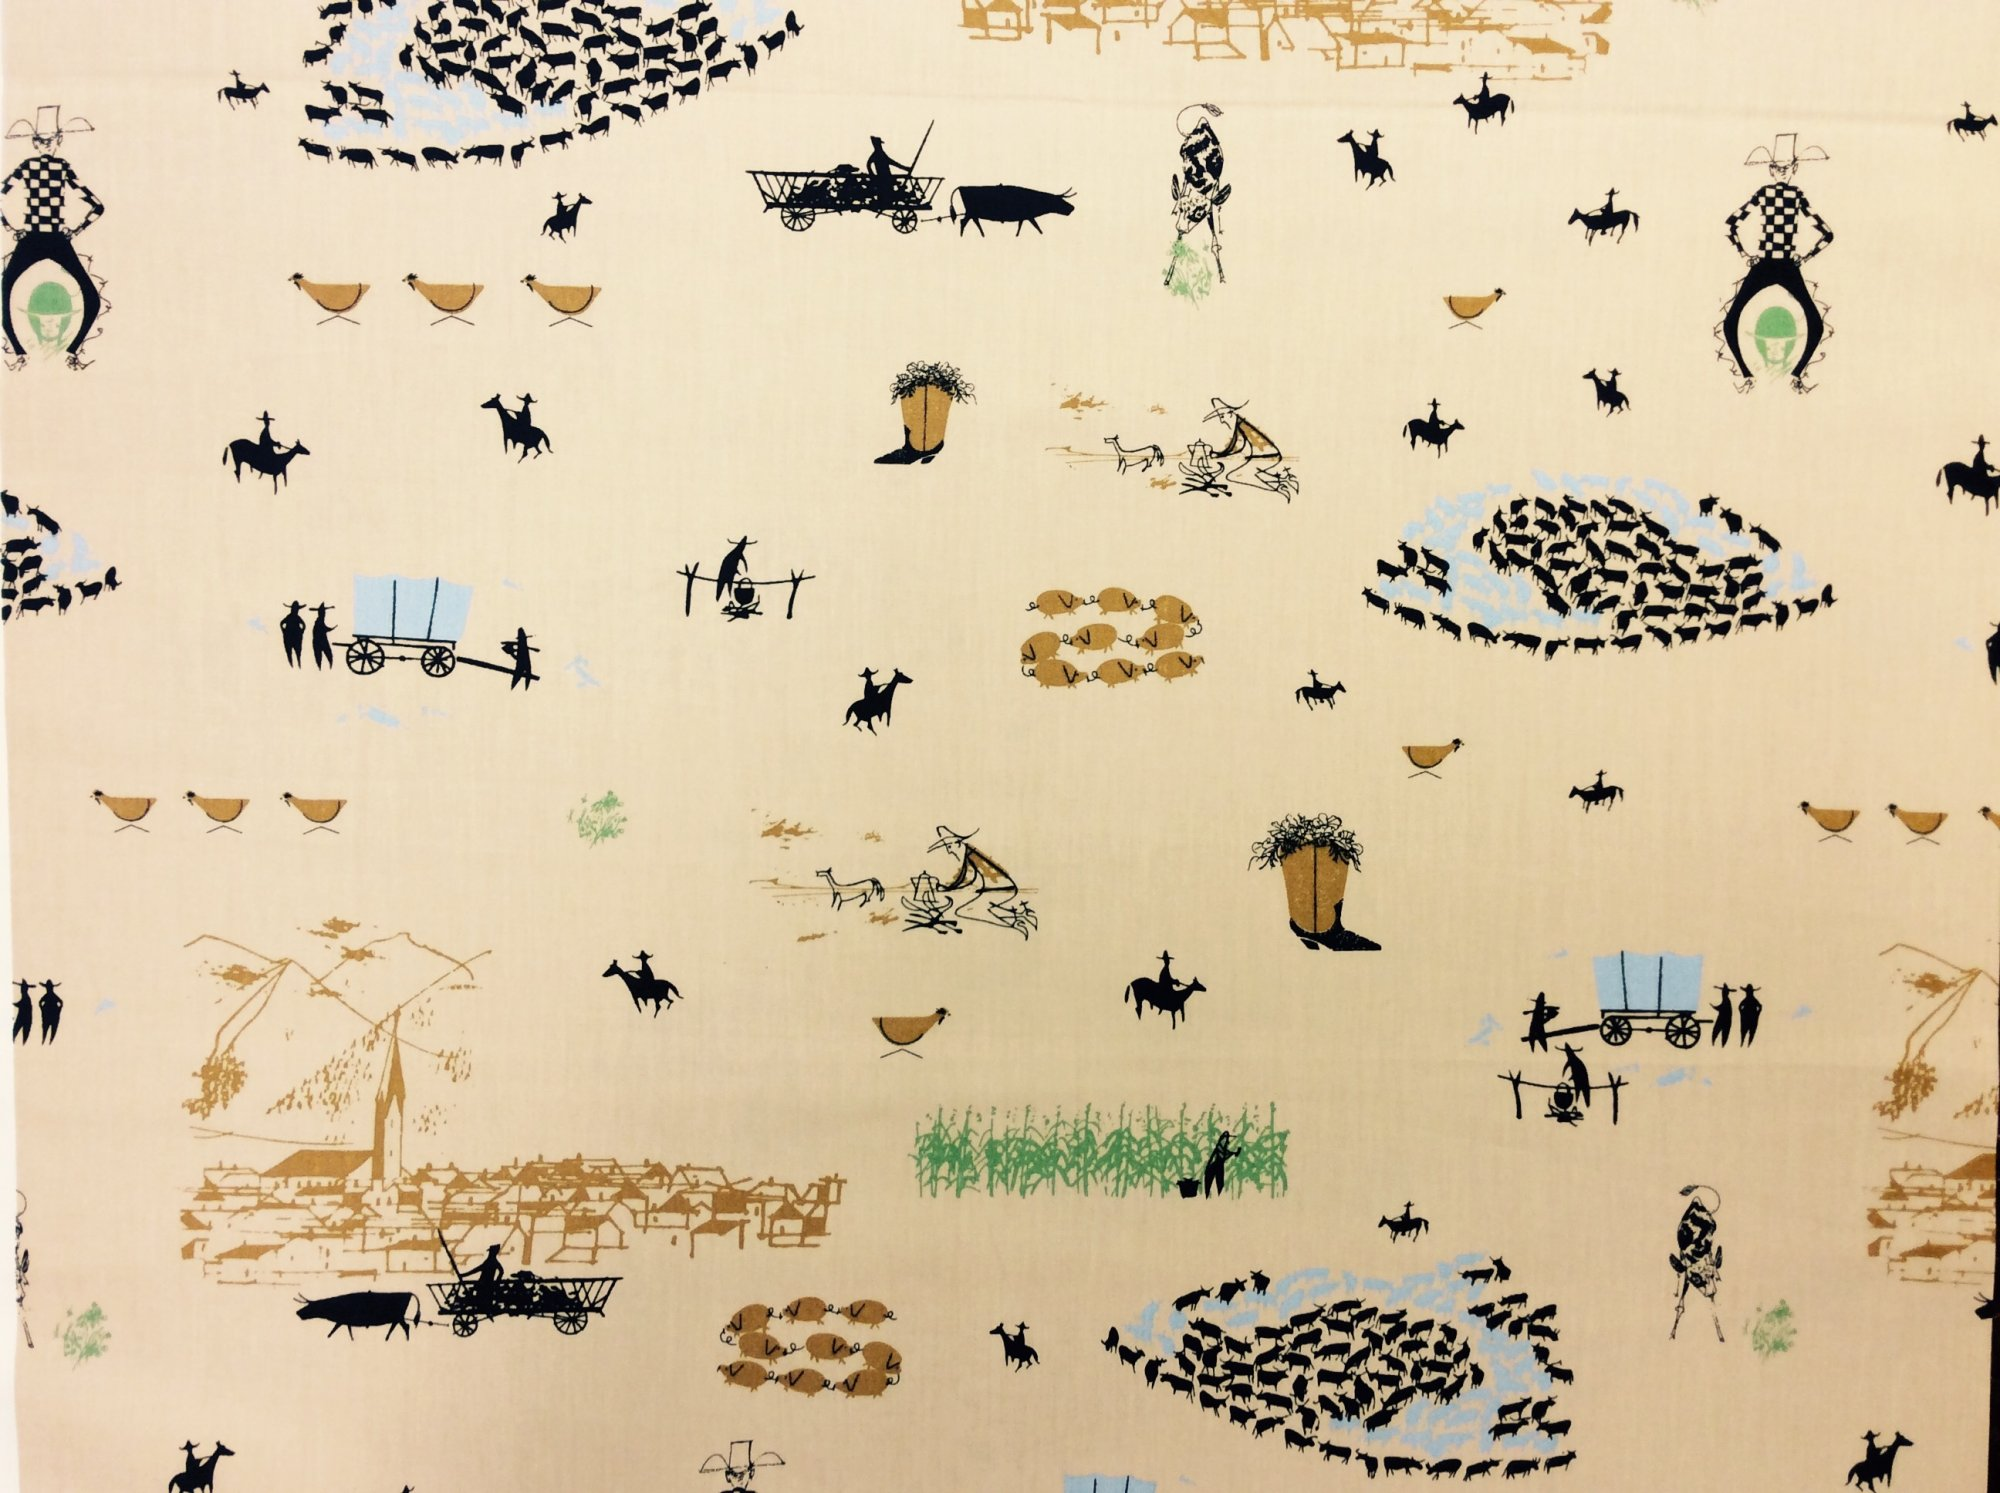 Charley Harper Organic Cotton New Frontier Cowboy Pastoral Farm Wild West Cattle Cow Quilting Fabric CHB126